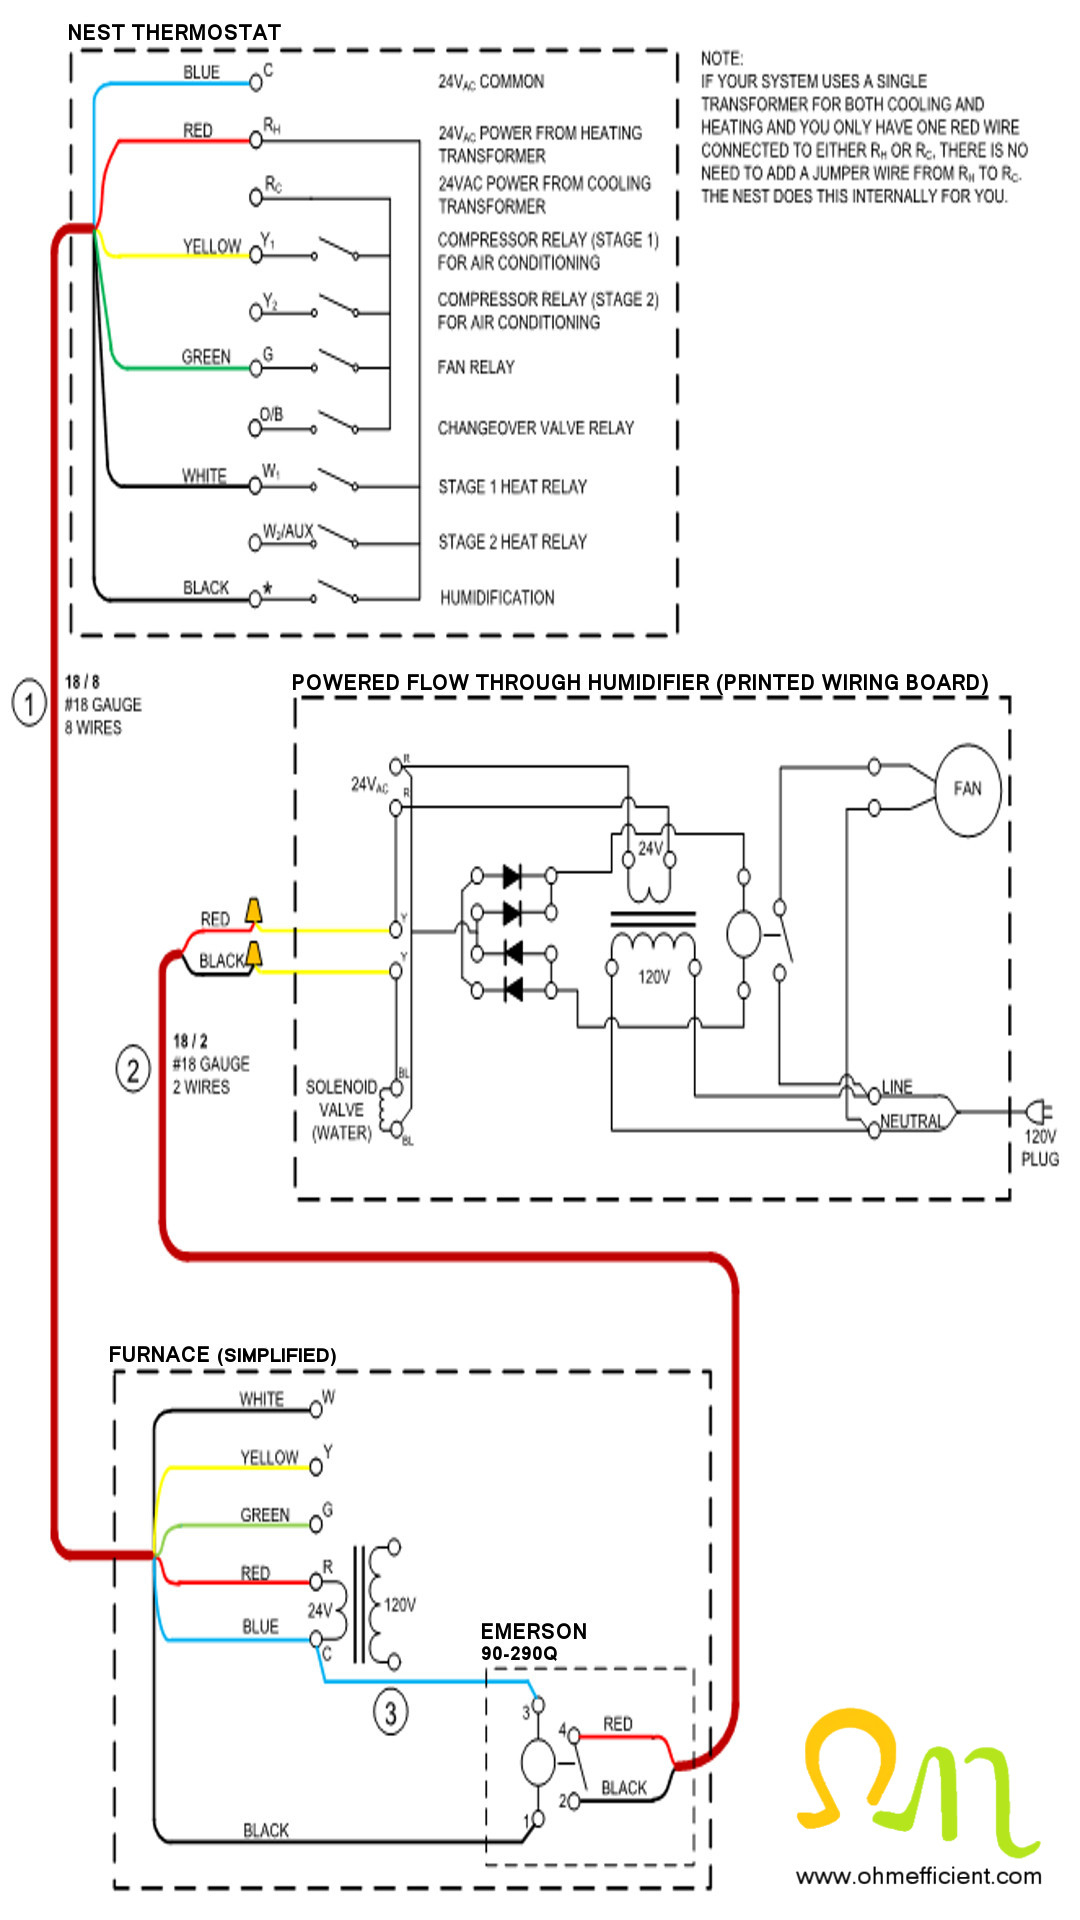 How To Connect & Setup A Nest Thermostat To Function As A Humidistat - Nest Wiring Diagram 8 Wire